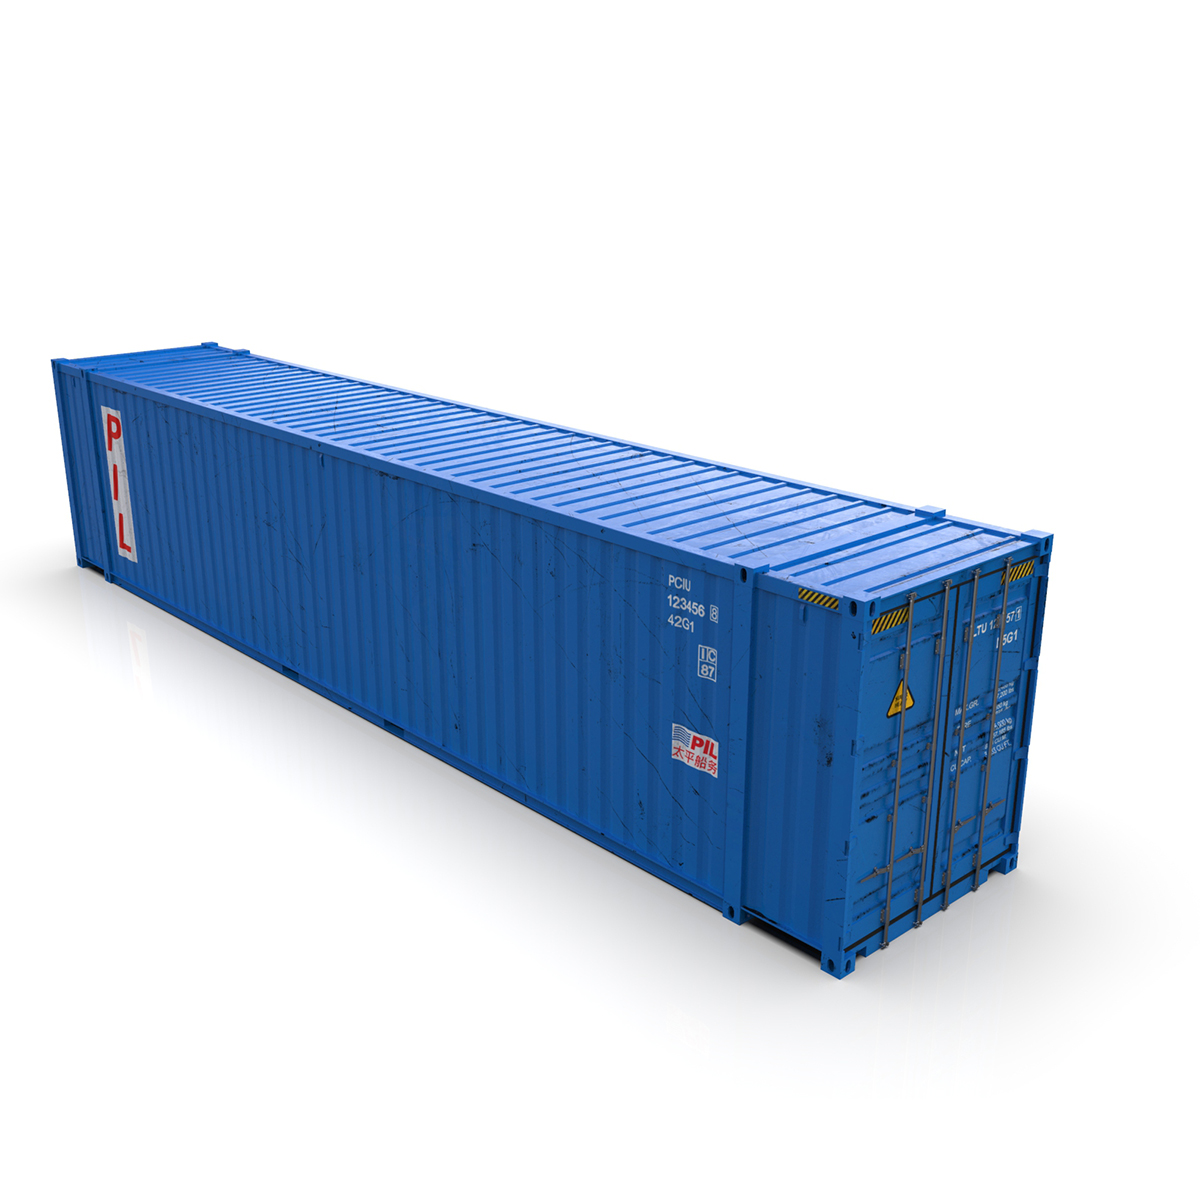 45 feet high cube pil shipping container 3d model max fbx ma mb texture obj 278443